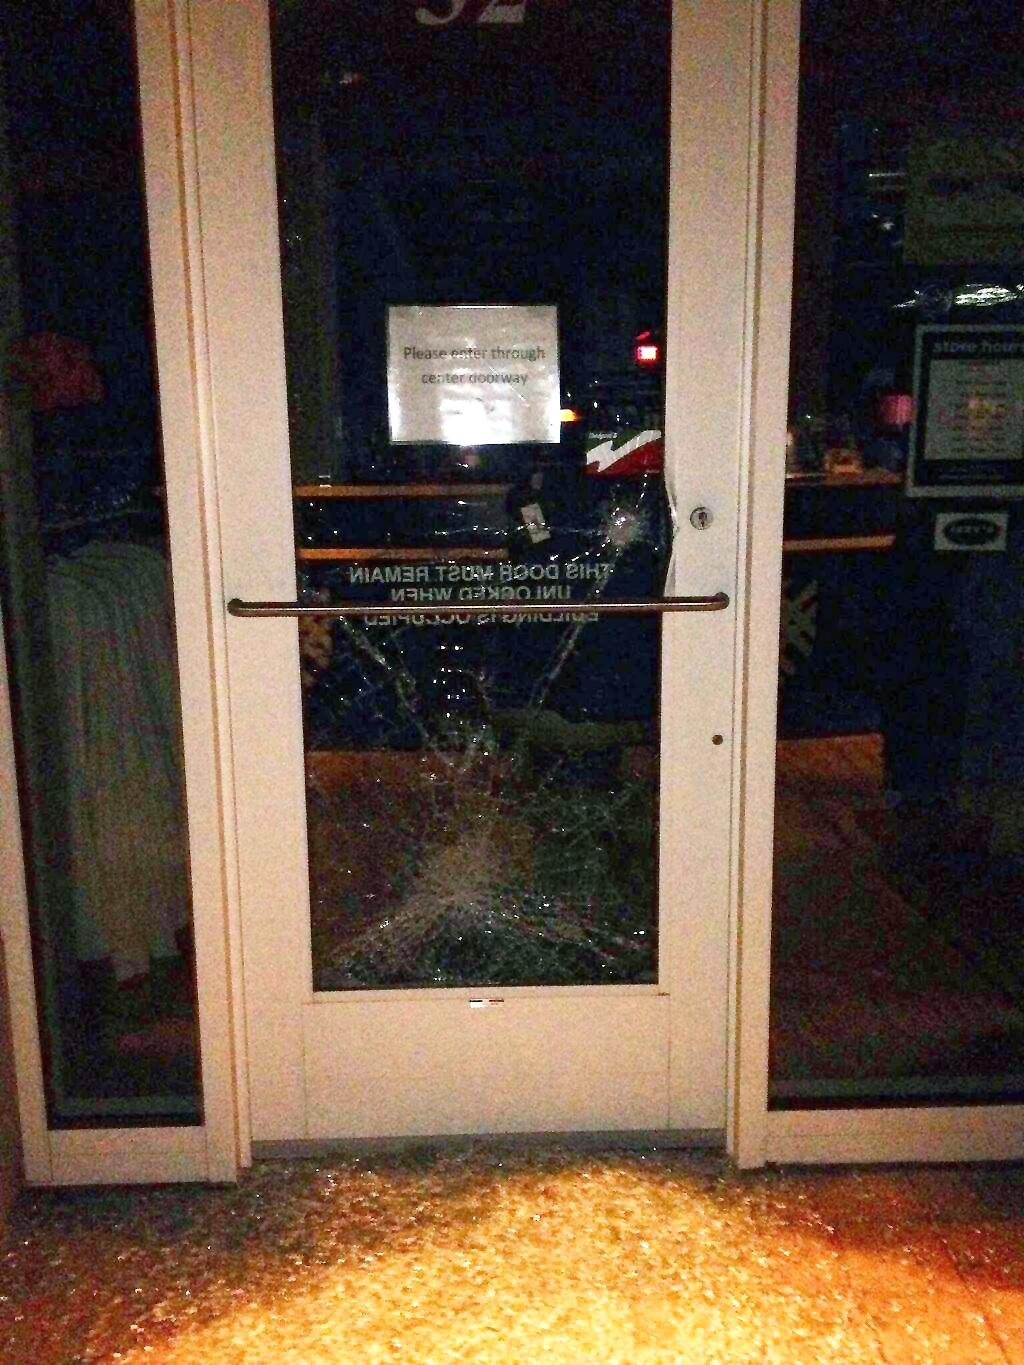 The door to the Highlander suffered extensive damage after the attempted break-in Sunday night. However, by the next day the glass had been replaced. Photo by Joe Klein '16.